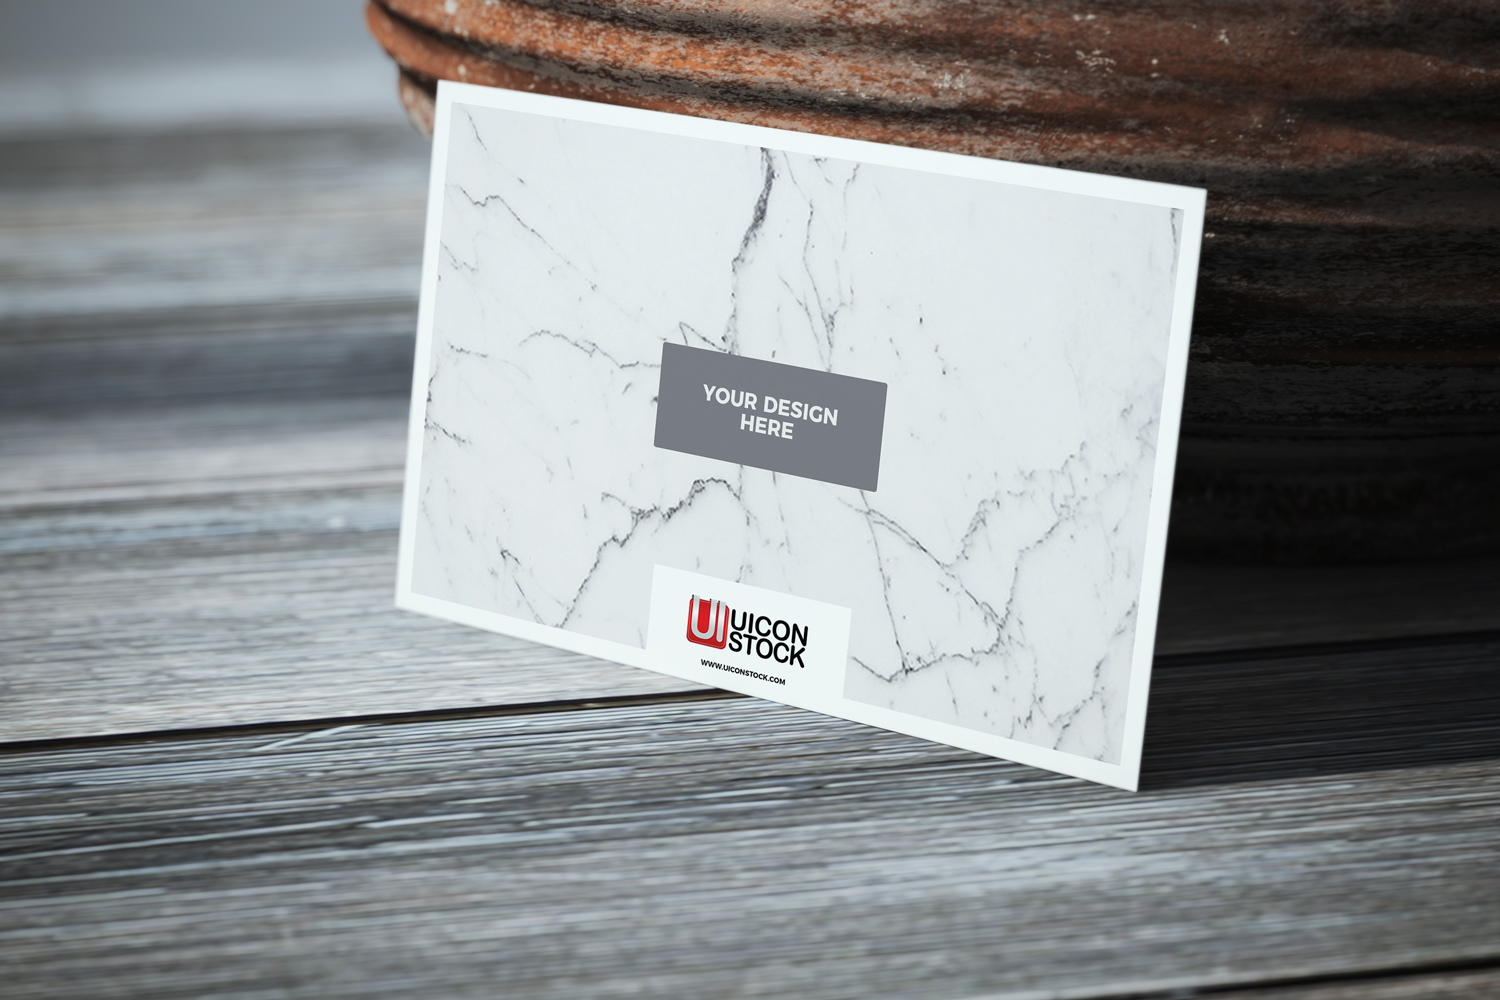 Free Texture Paper Business Card on Wooden Table Mockup - A Graphic ...